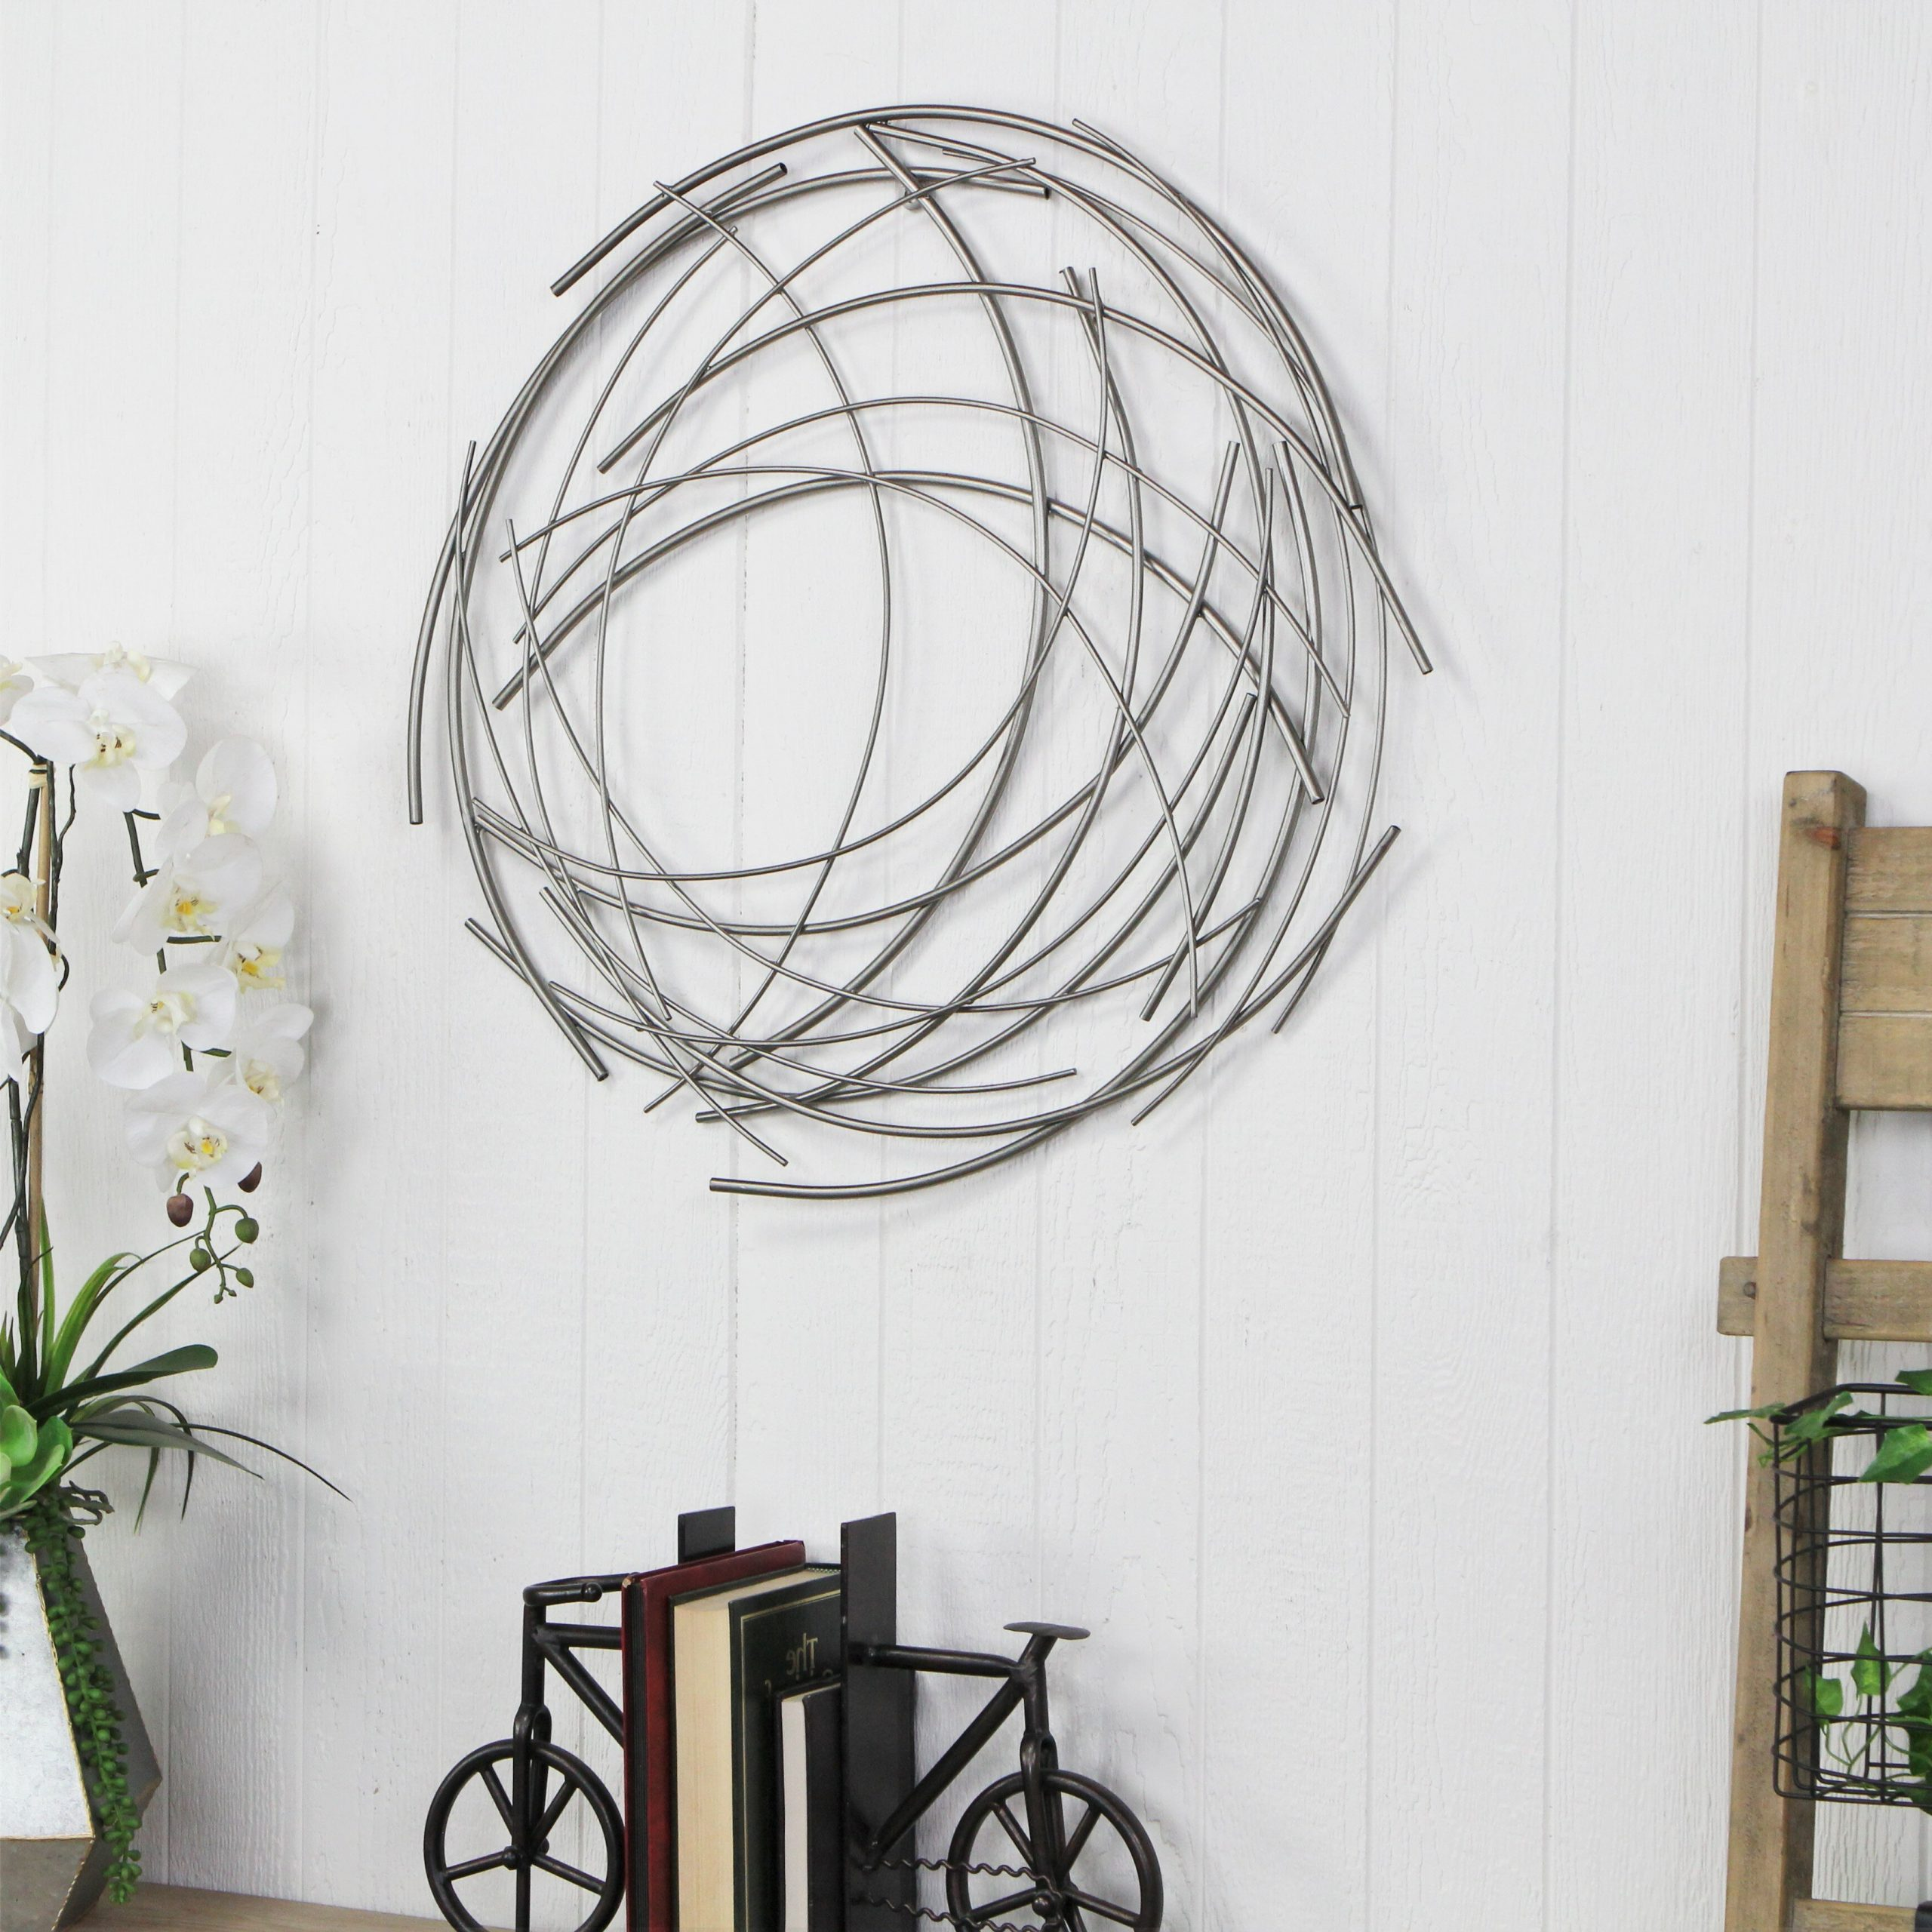 Wayfair Intended For Looped Wall Décor By Wade Logan (View 13 of 20)